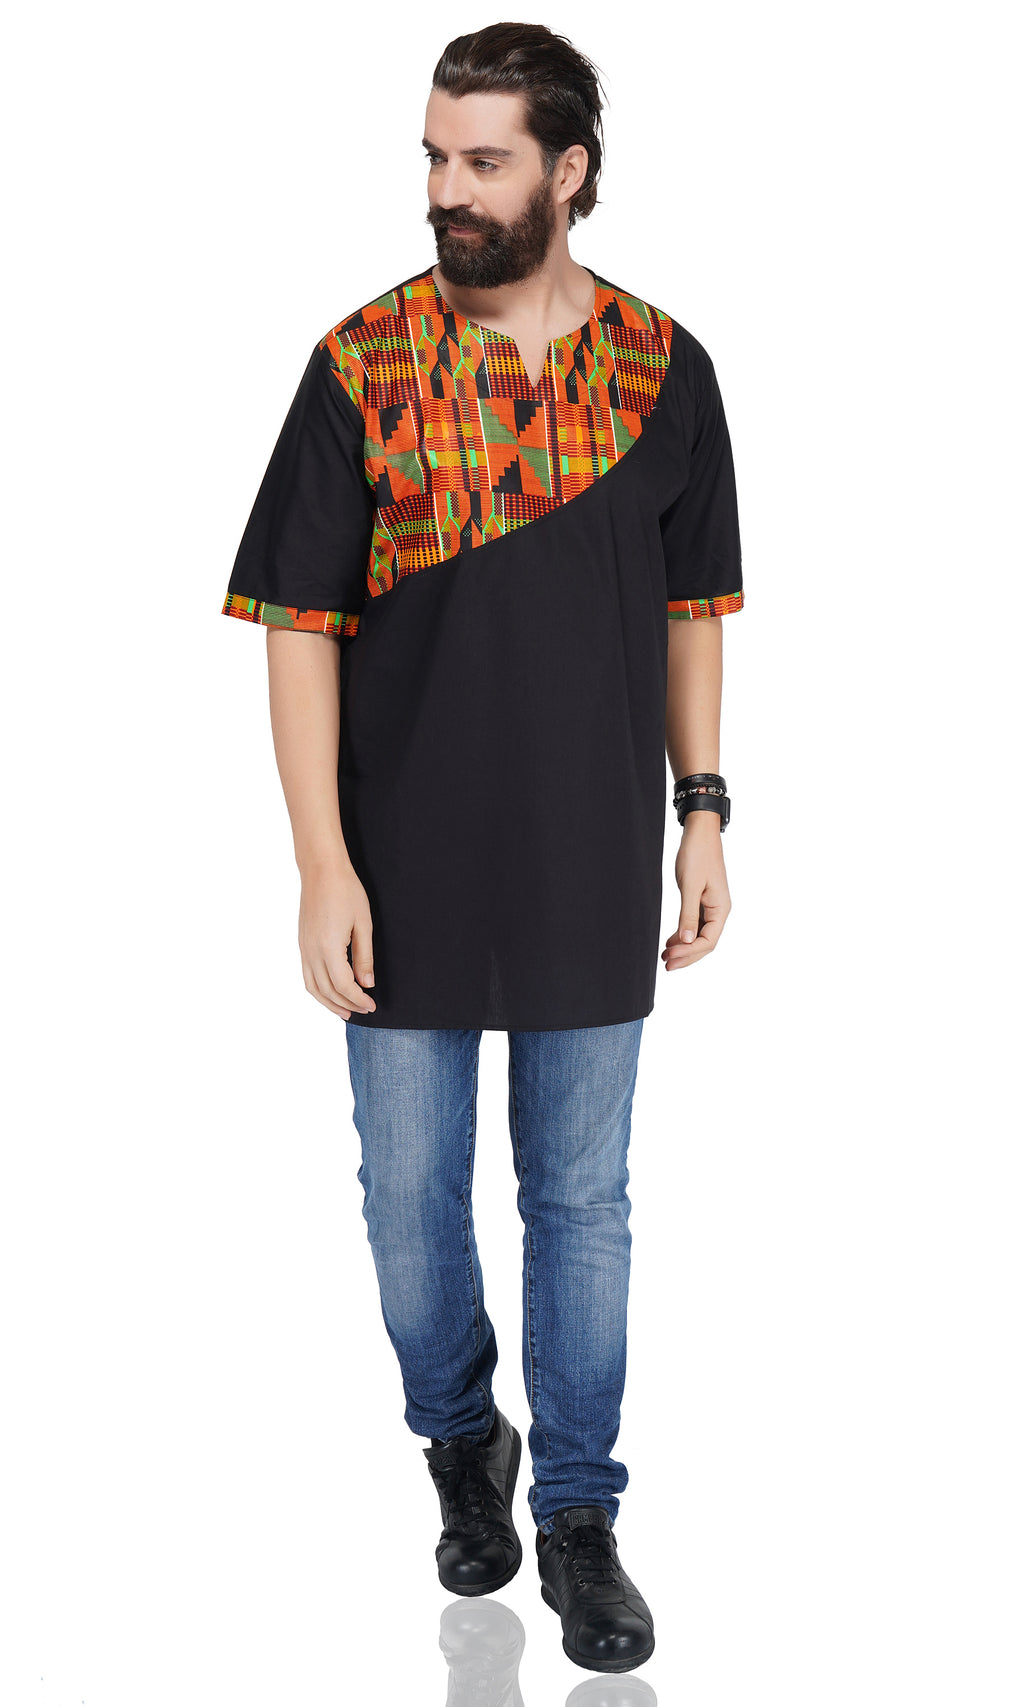 Kente Accent Black Shirt